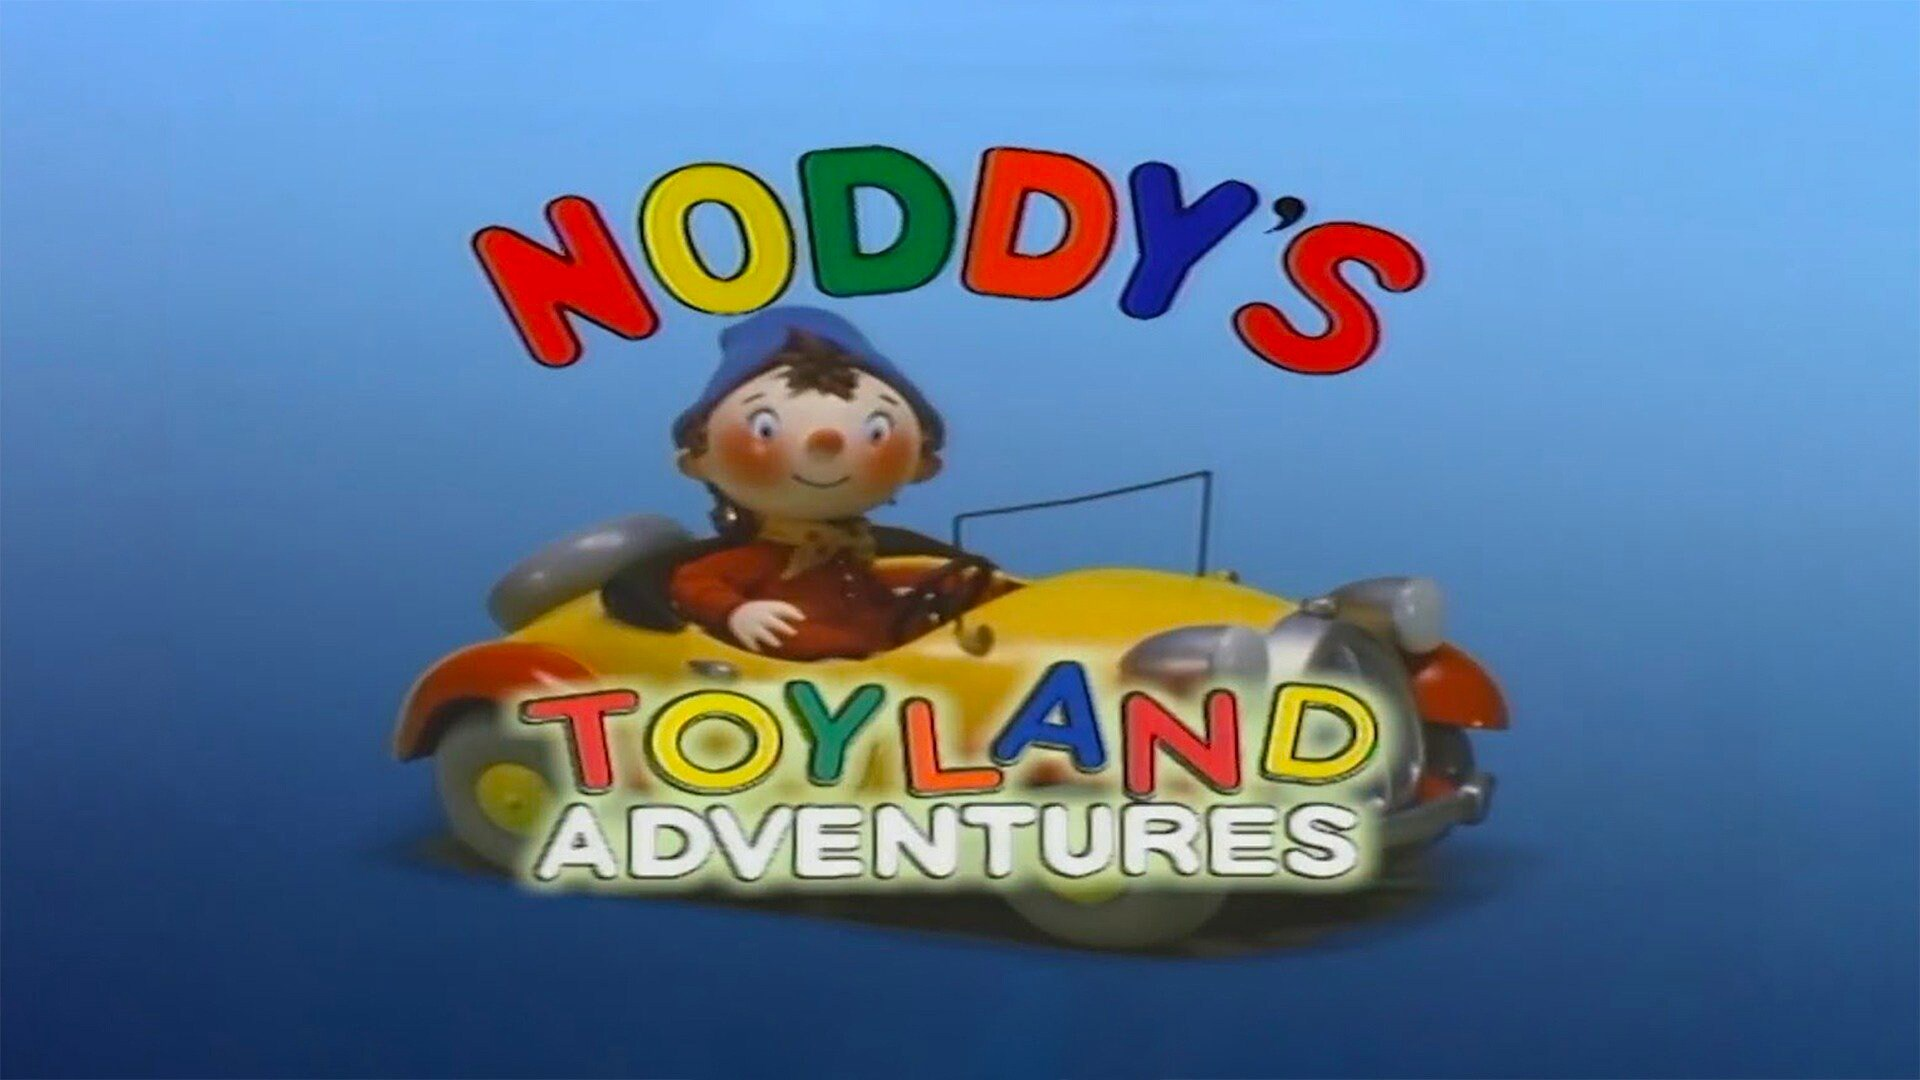 Noddy Has an Afternoon Off